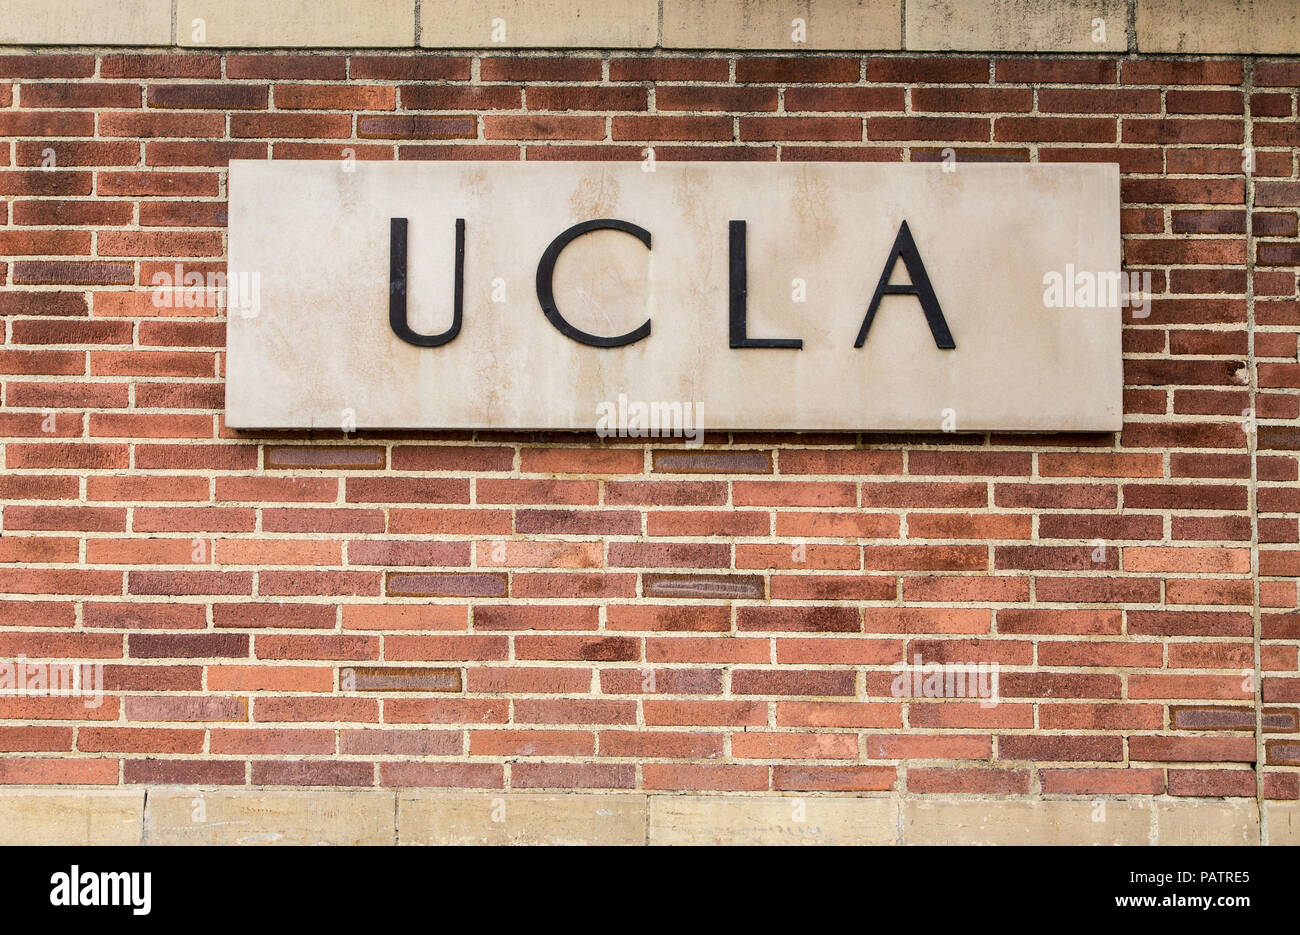 LOS ANGELES, CA/USA - MAY 25, 2015: Entrance sign to UCLA campus. - Stock Image